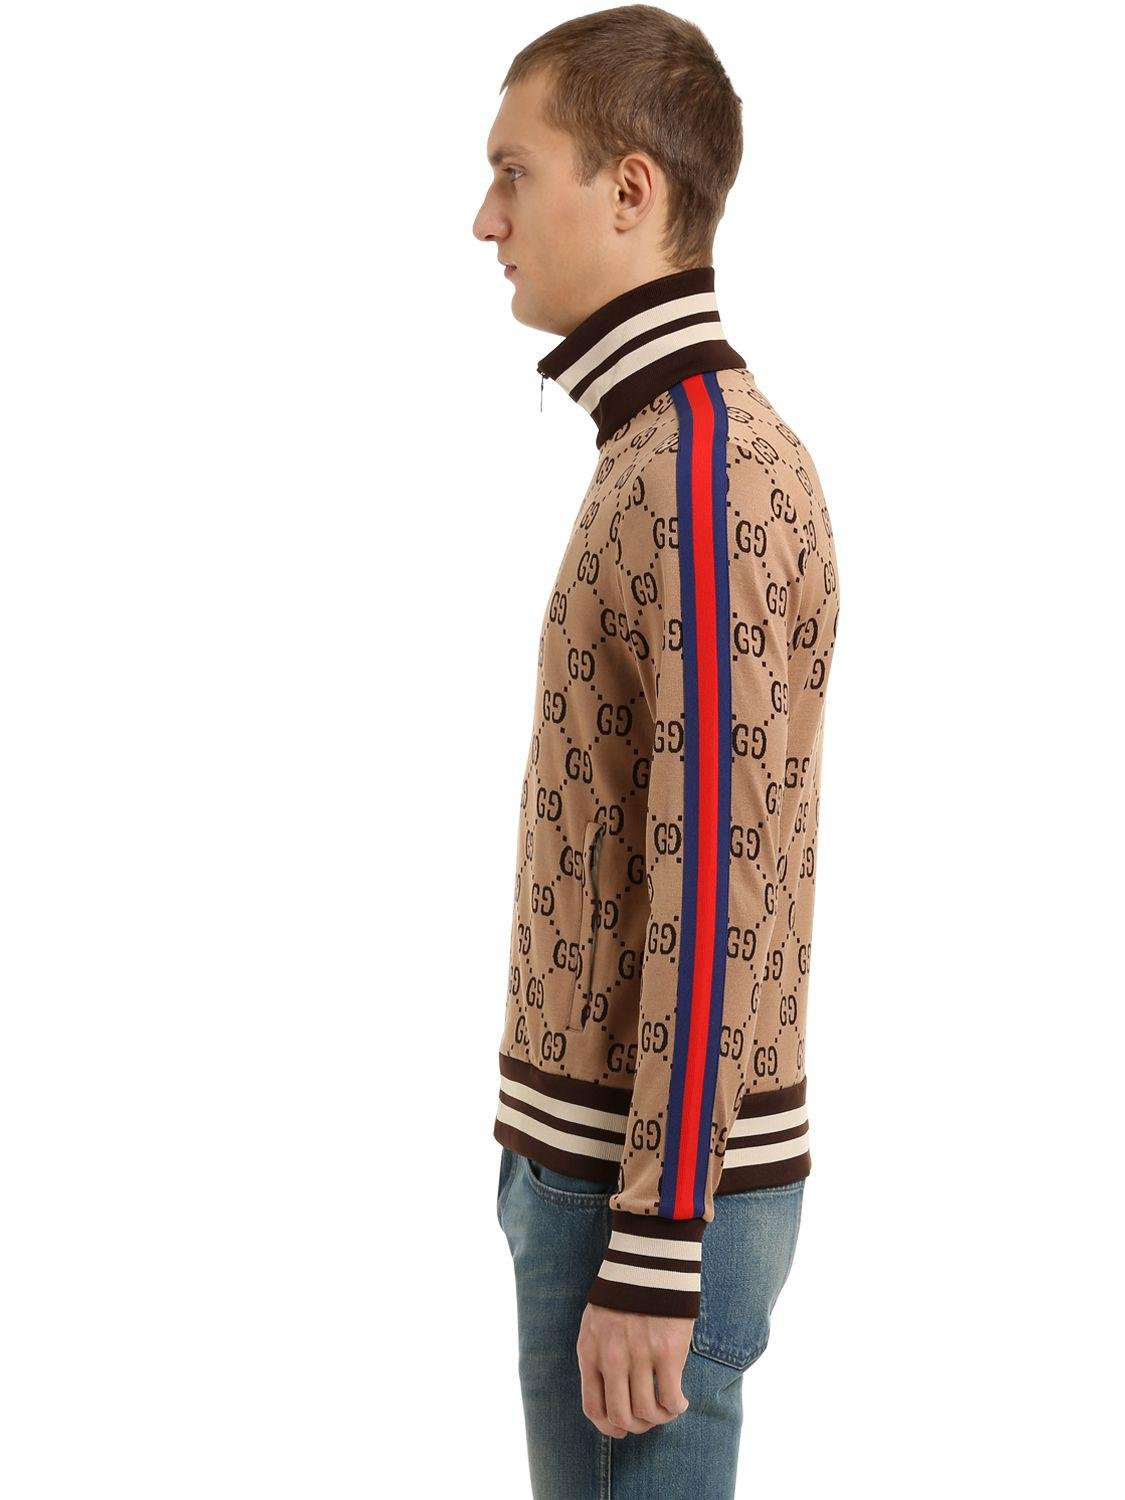 Lyst Gucci Gg Zipped Jacquard Track Jacket In Brown For Men